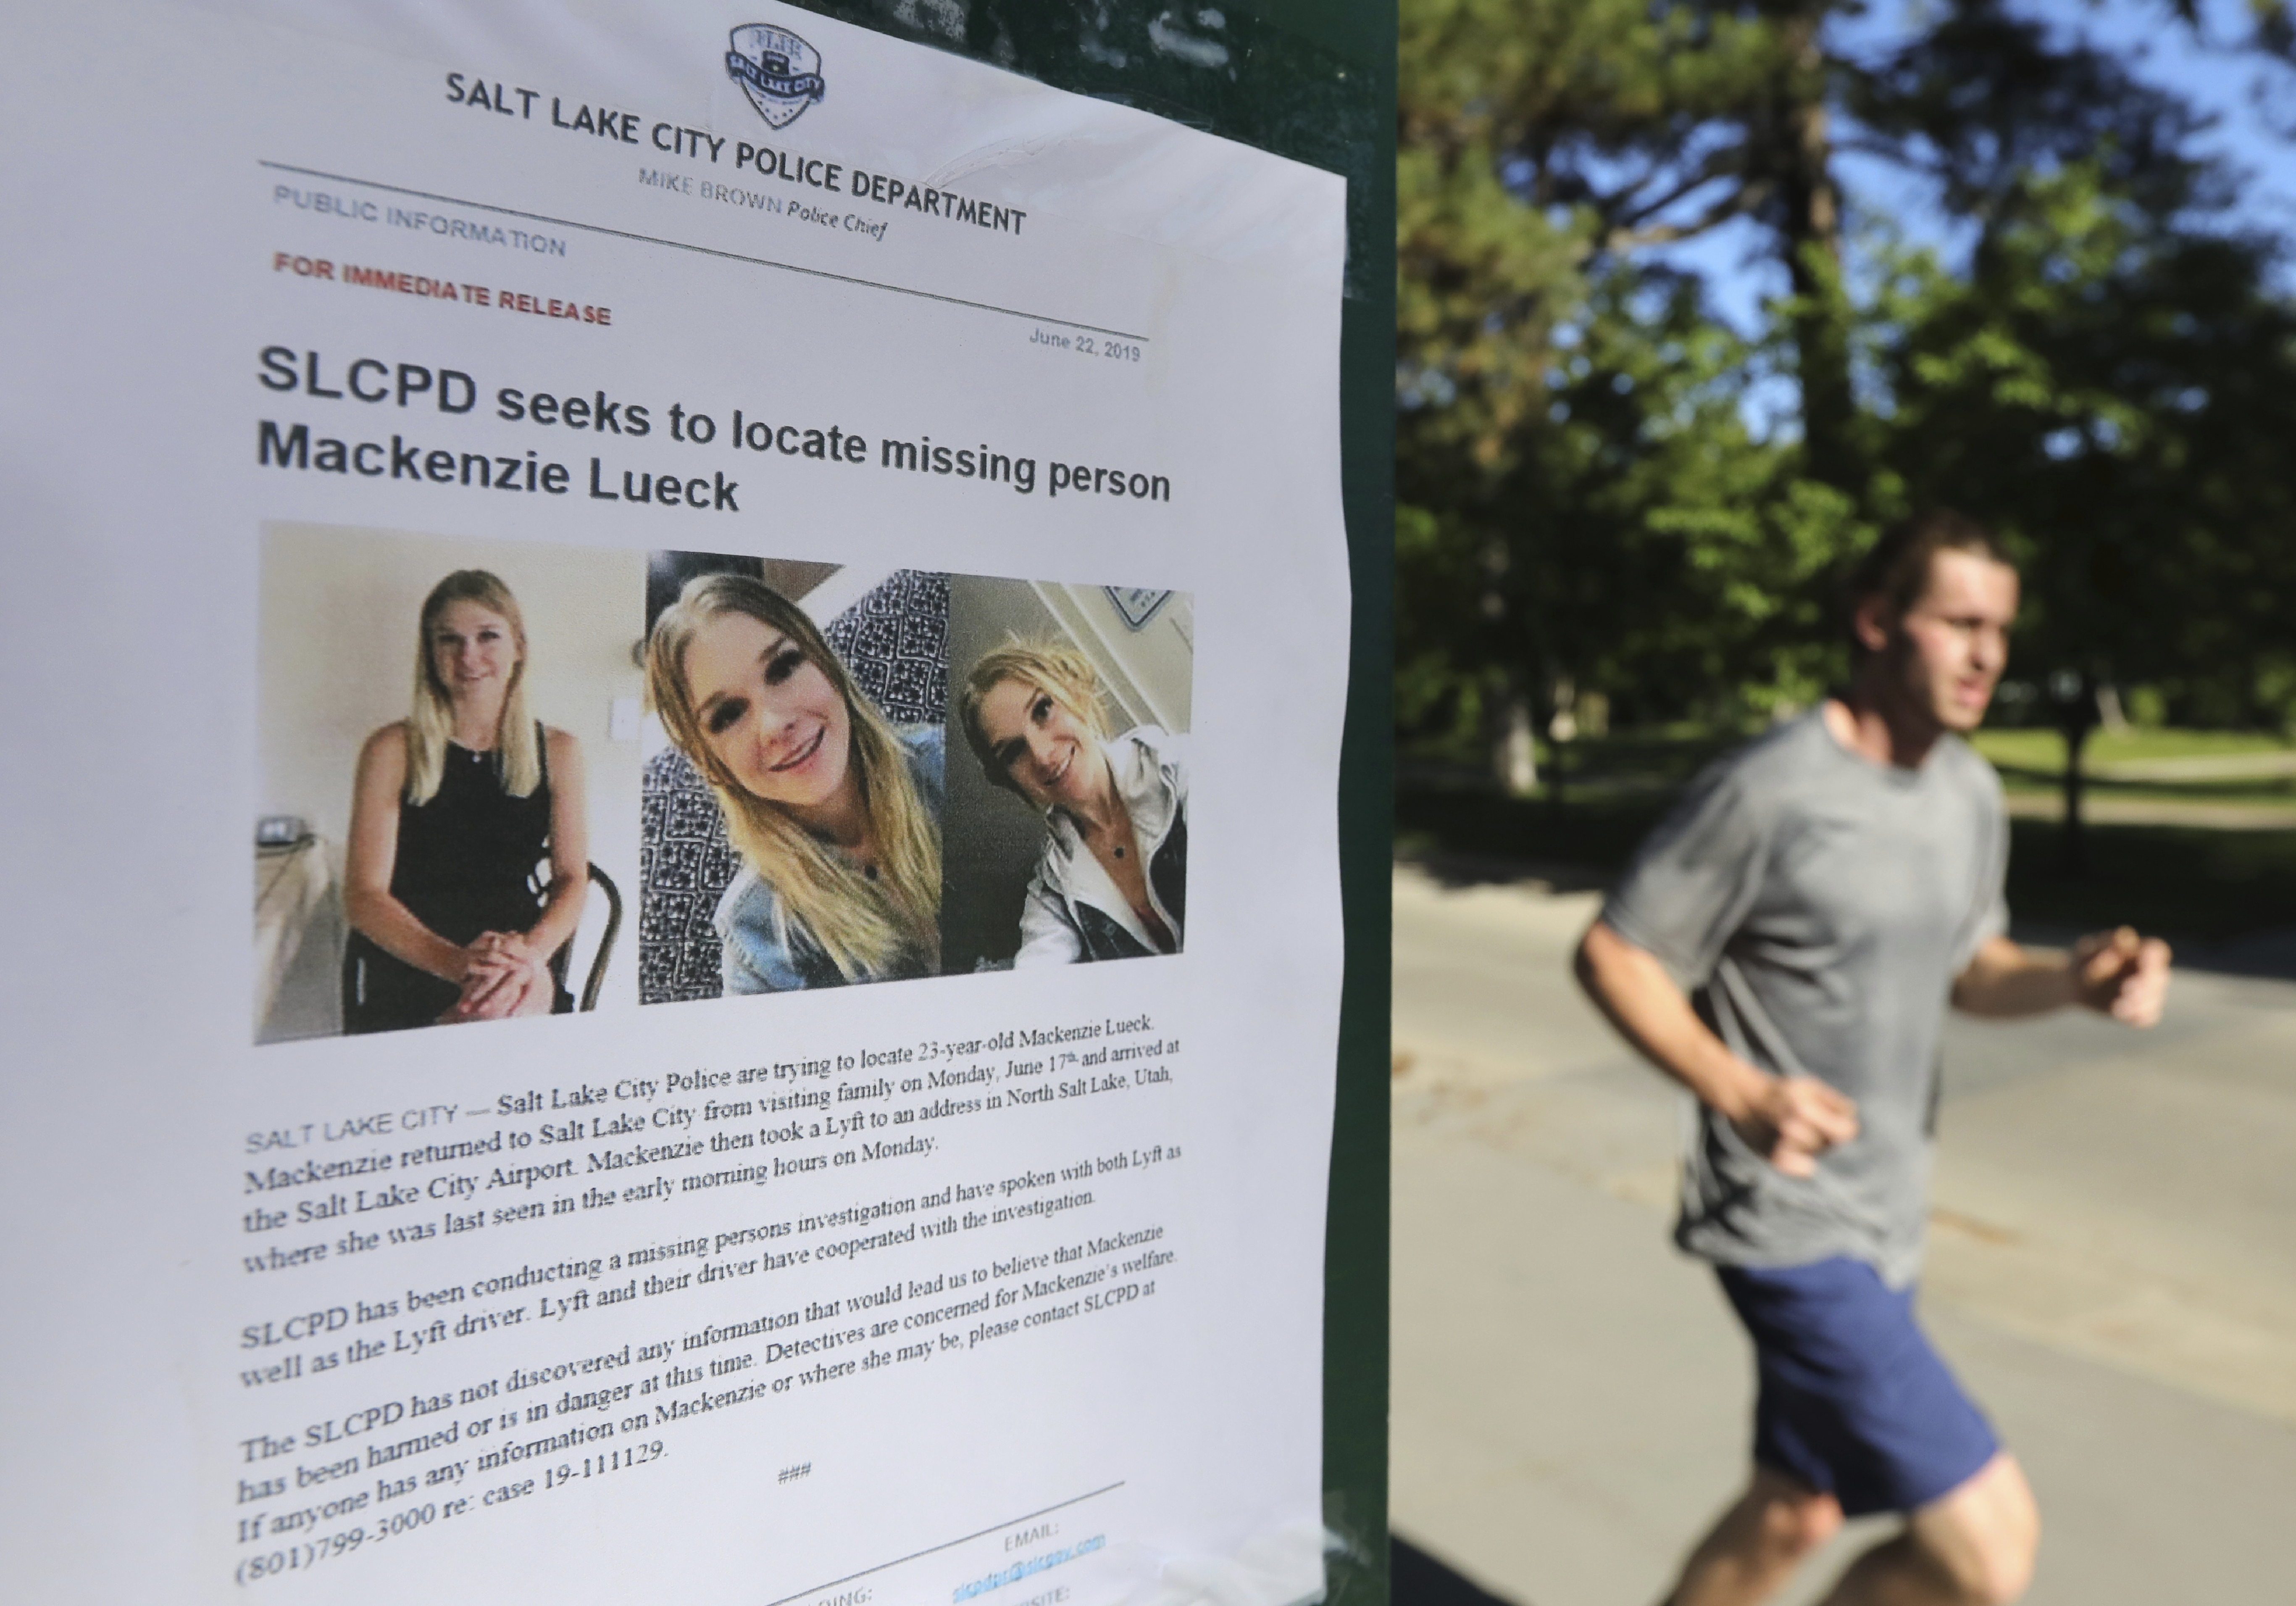 In this June 24, 2019 file photo, a jogger runs pass a poster of Mackenzie Lueck at Liberty Park in Salt Lake City. One person was taken into custody Friday, June 28, in connection with the disappearance of Lueck, a Utah college student who disappeared 11 days ago.